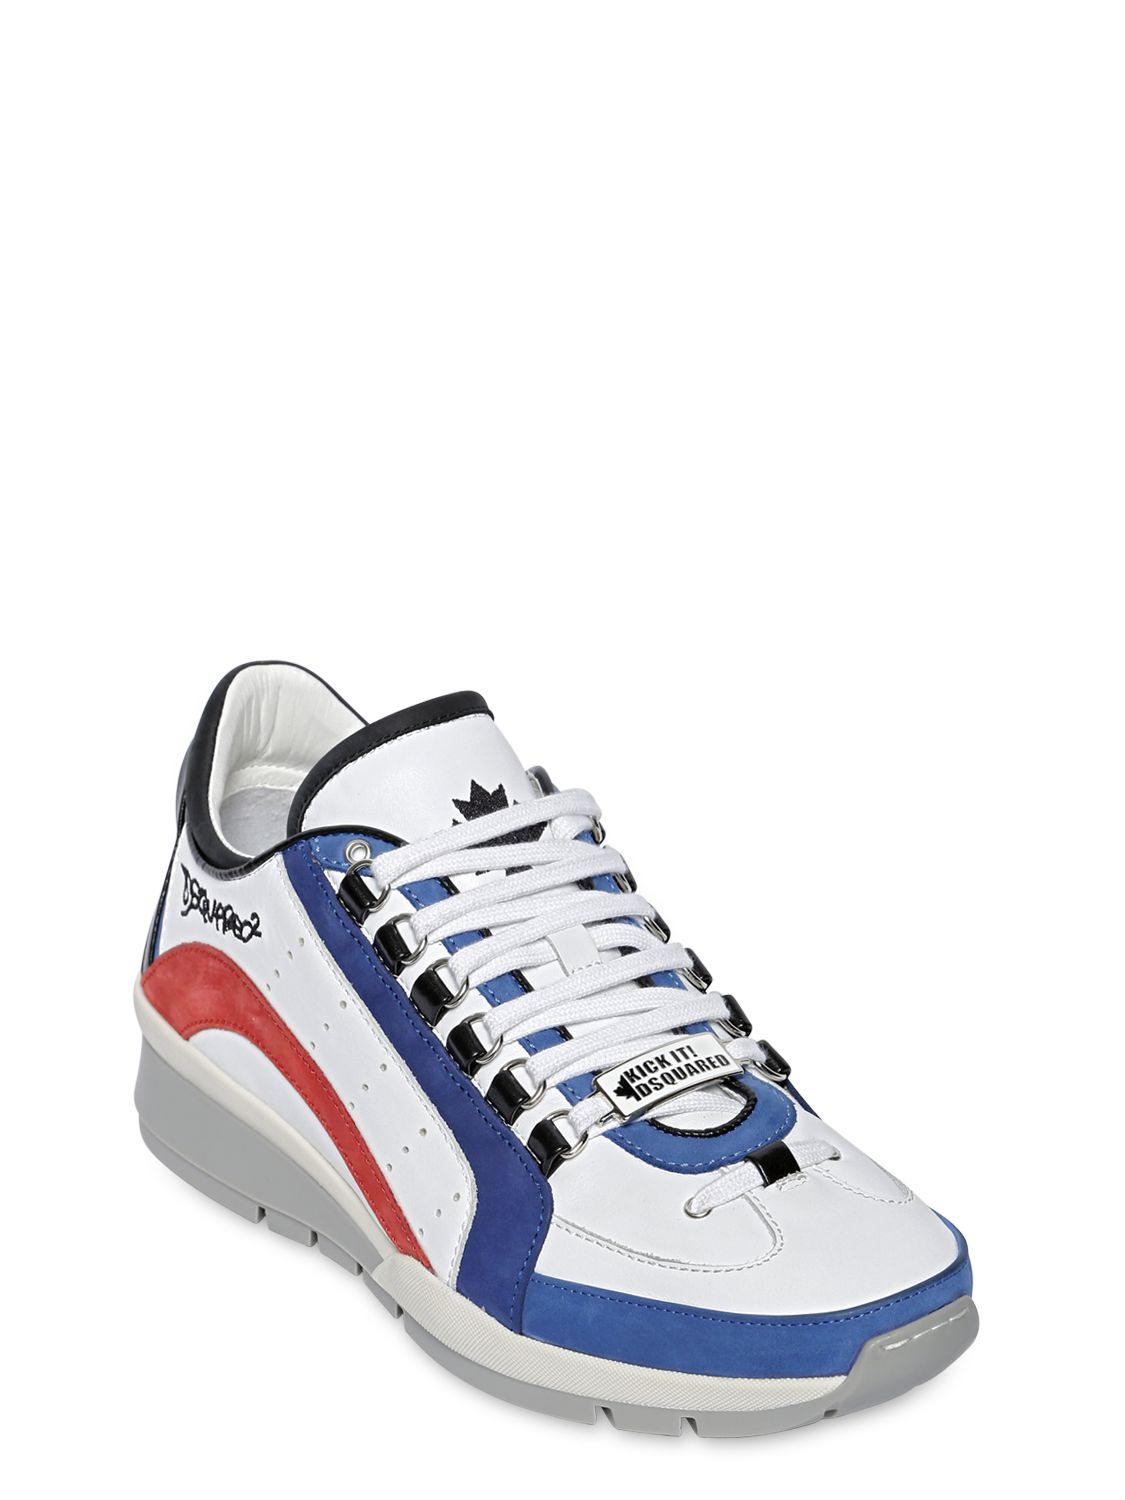 DSquared² Leather & Nubuck Sneakers in White